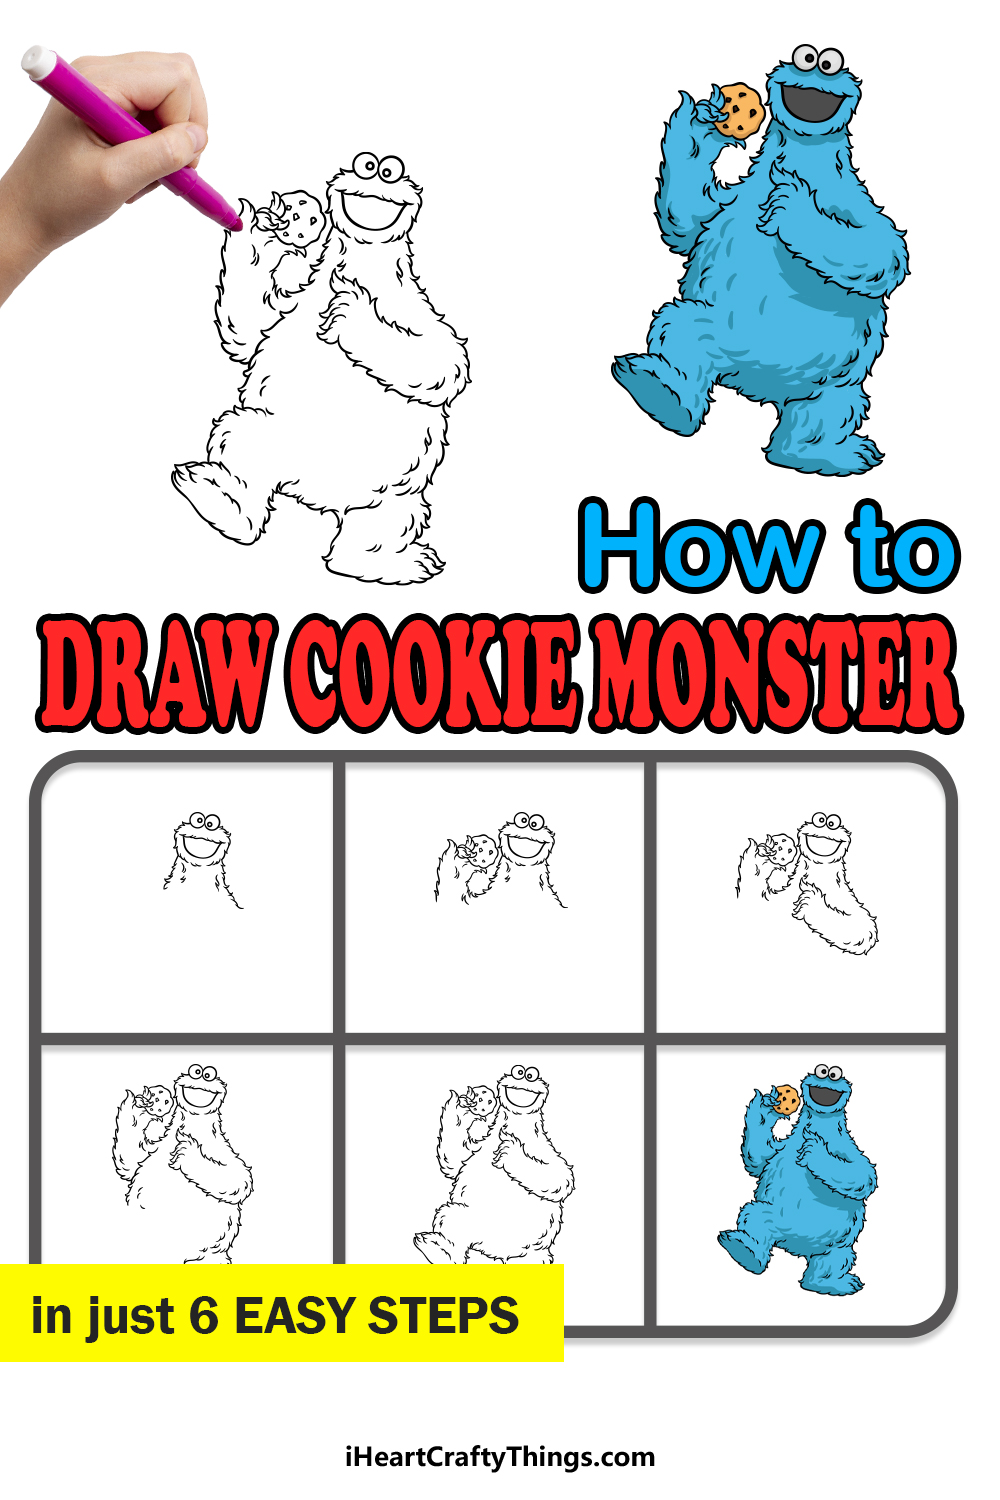 how to draw a cookie monster in 6 easy steps